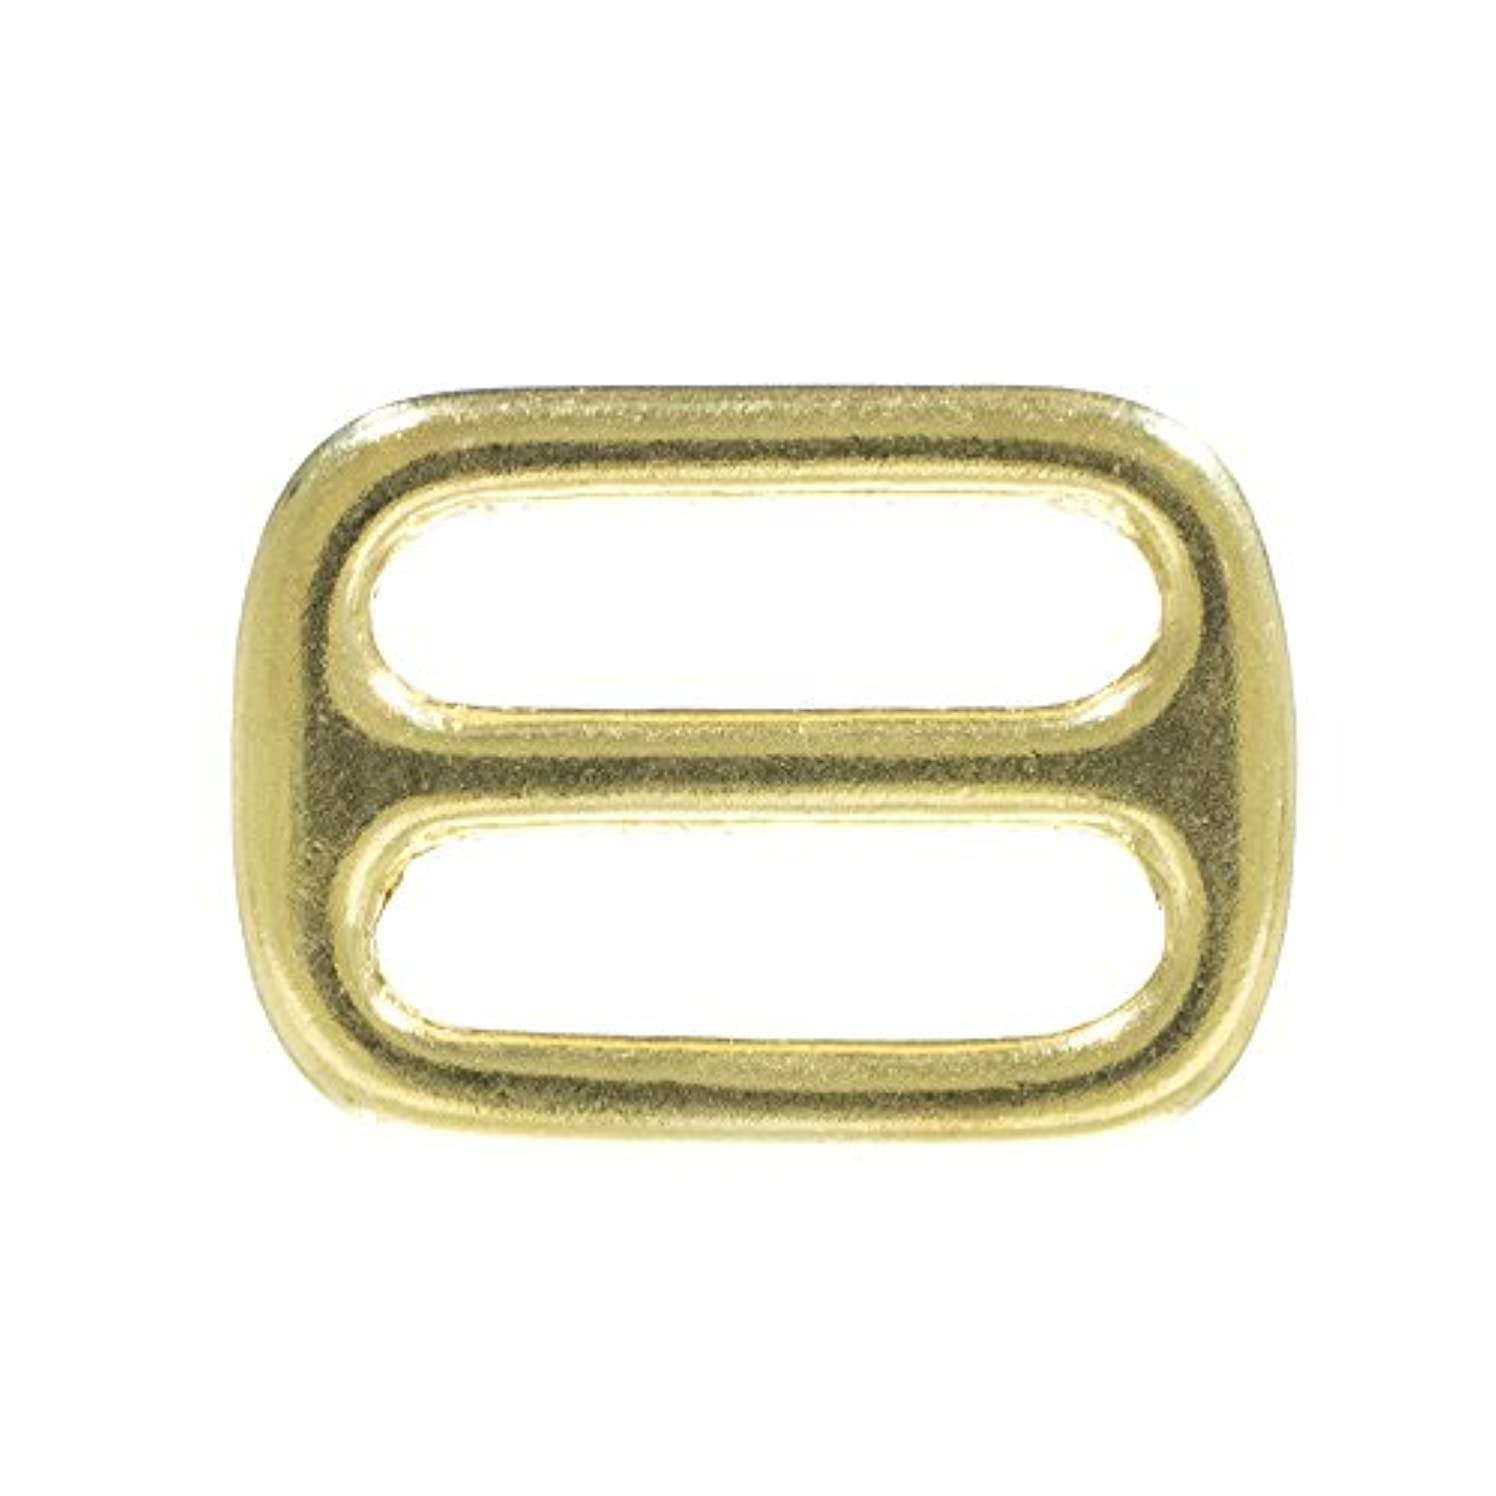 Brass Tri-Glides – 1 & 1 1/2 inch – Crafting, DIY, Jewelry Making, Purse & More – Available in Multiple Pack Sizes